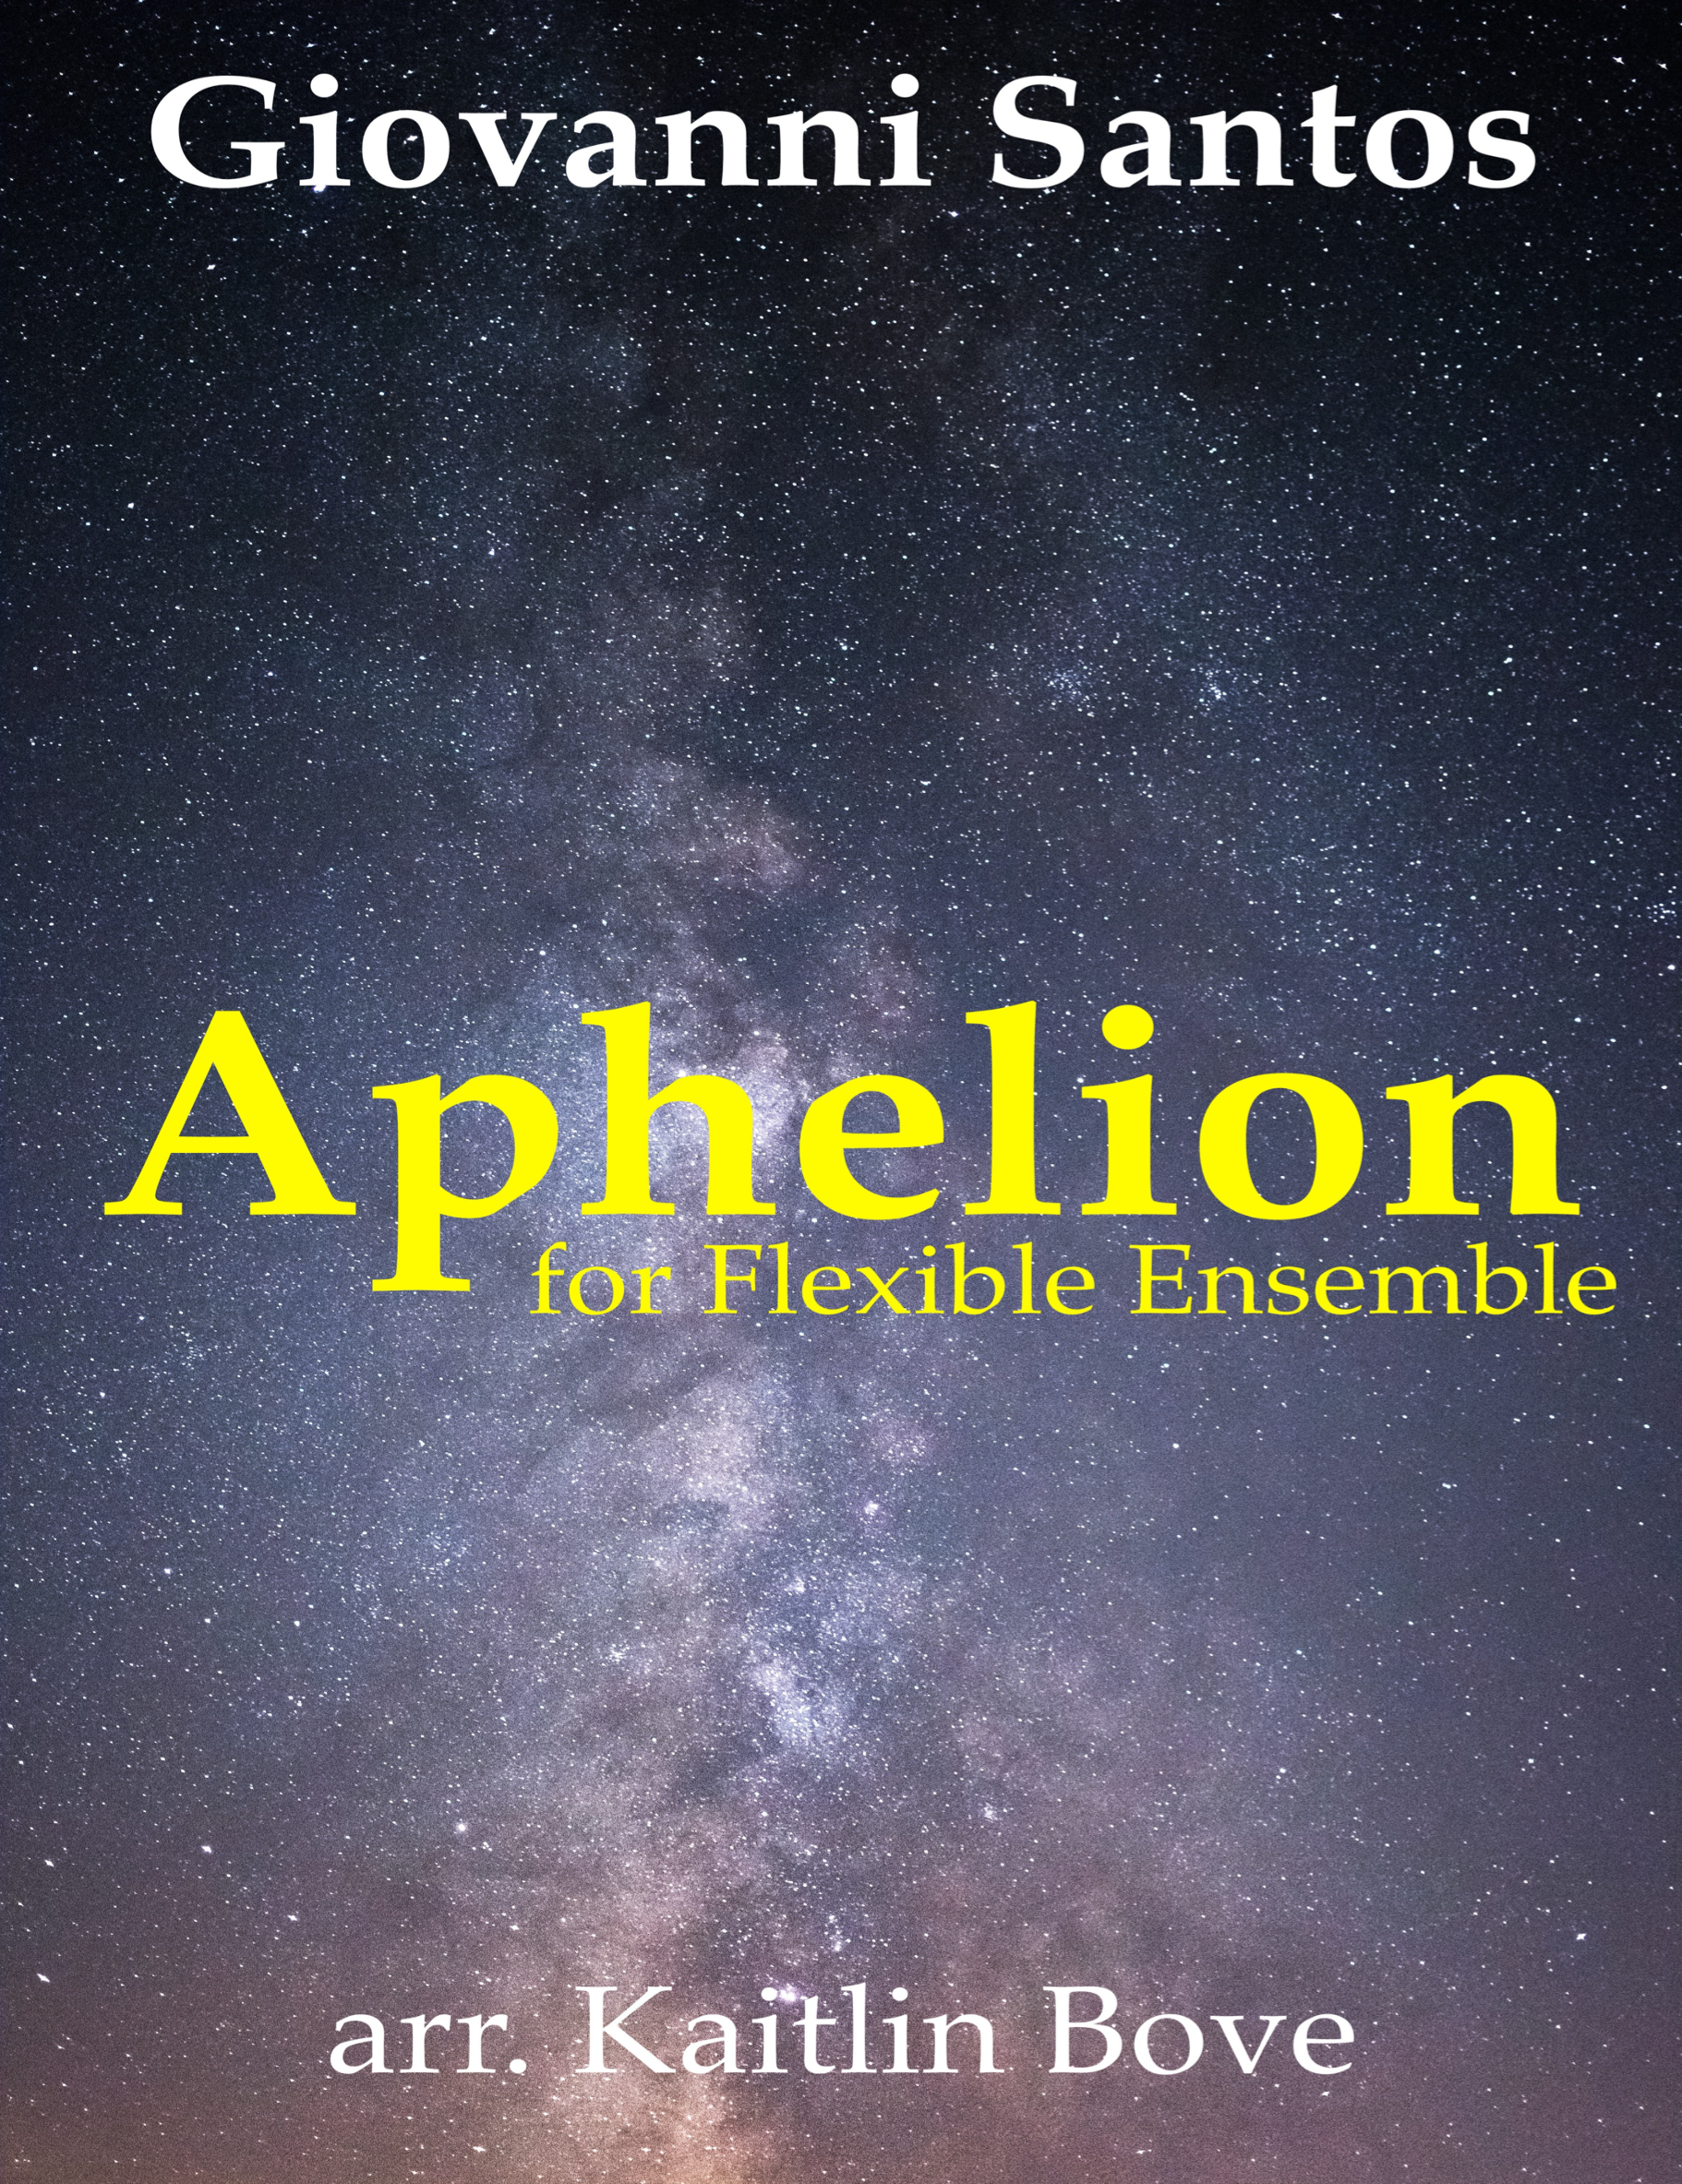 Aphelion (Flex Version) by Giovanni Santos, arr. Bove